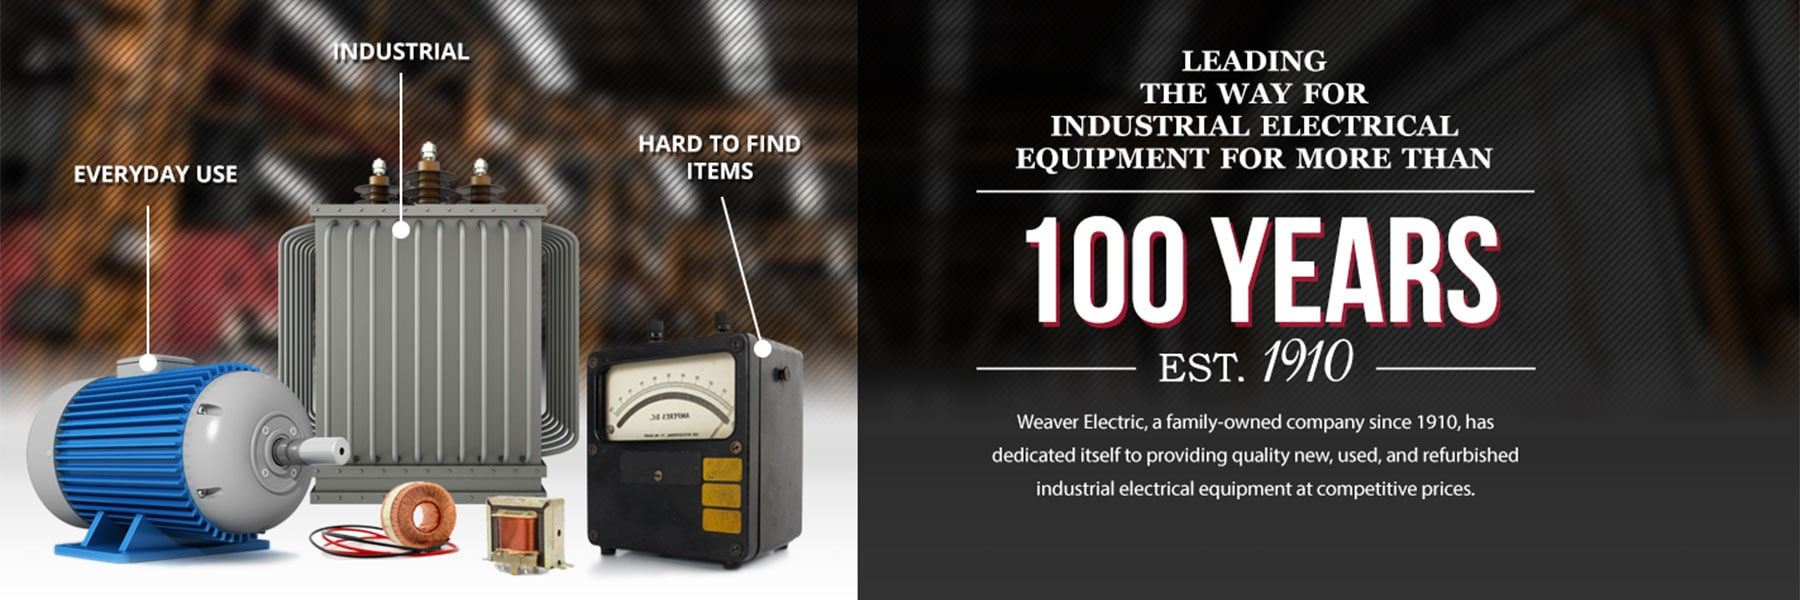 Leading the way for industrial electrical equipment for more than 100 years. Weaver Electric, a family-owner company since 1910, has dedicated itself to rpoviding quality new, used and refurbished industrial electrial equipment at competitive prices.